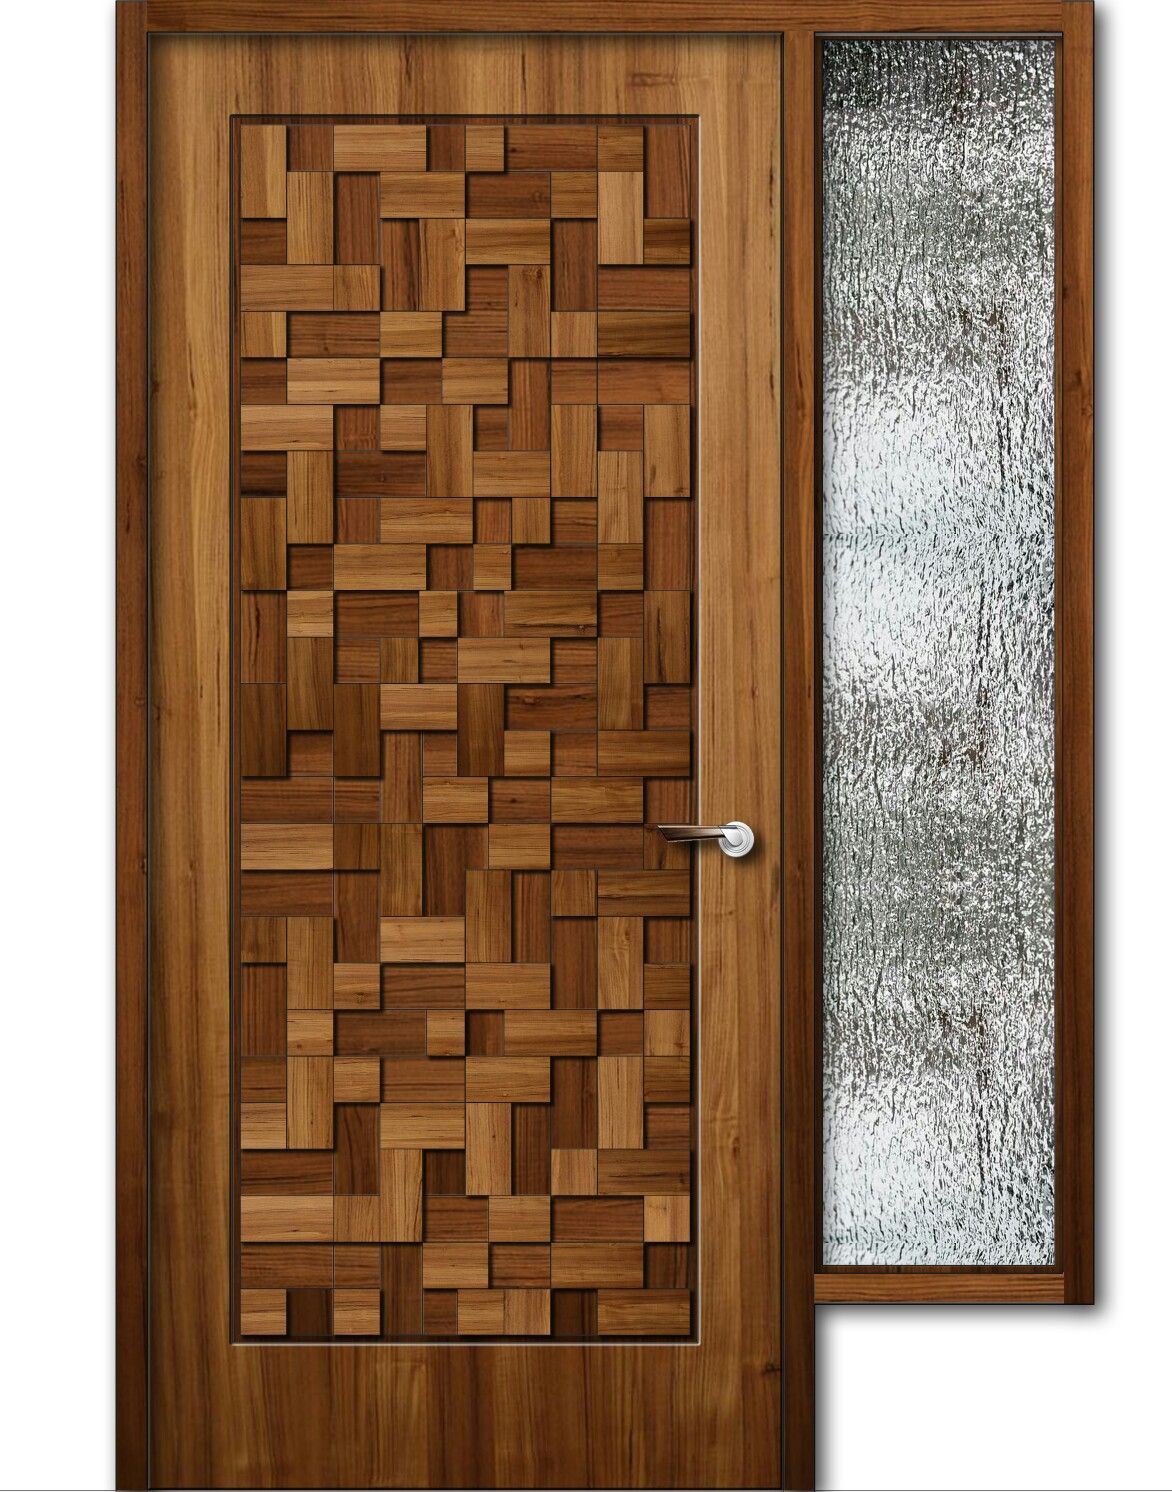 Teak wood finish wooden door with window 8feet height for French main door designs